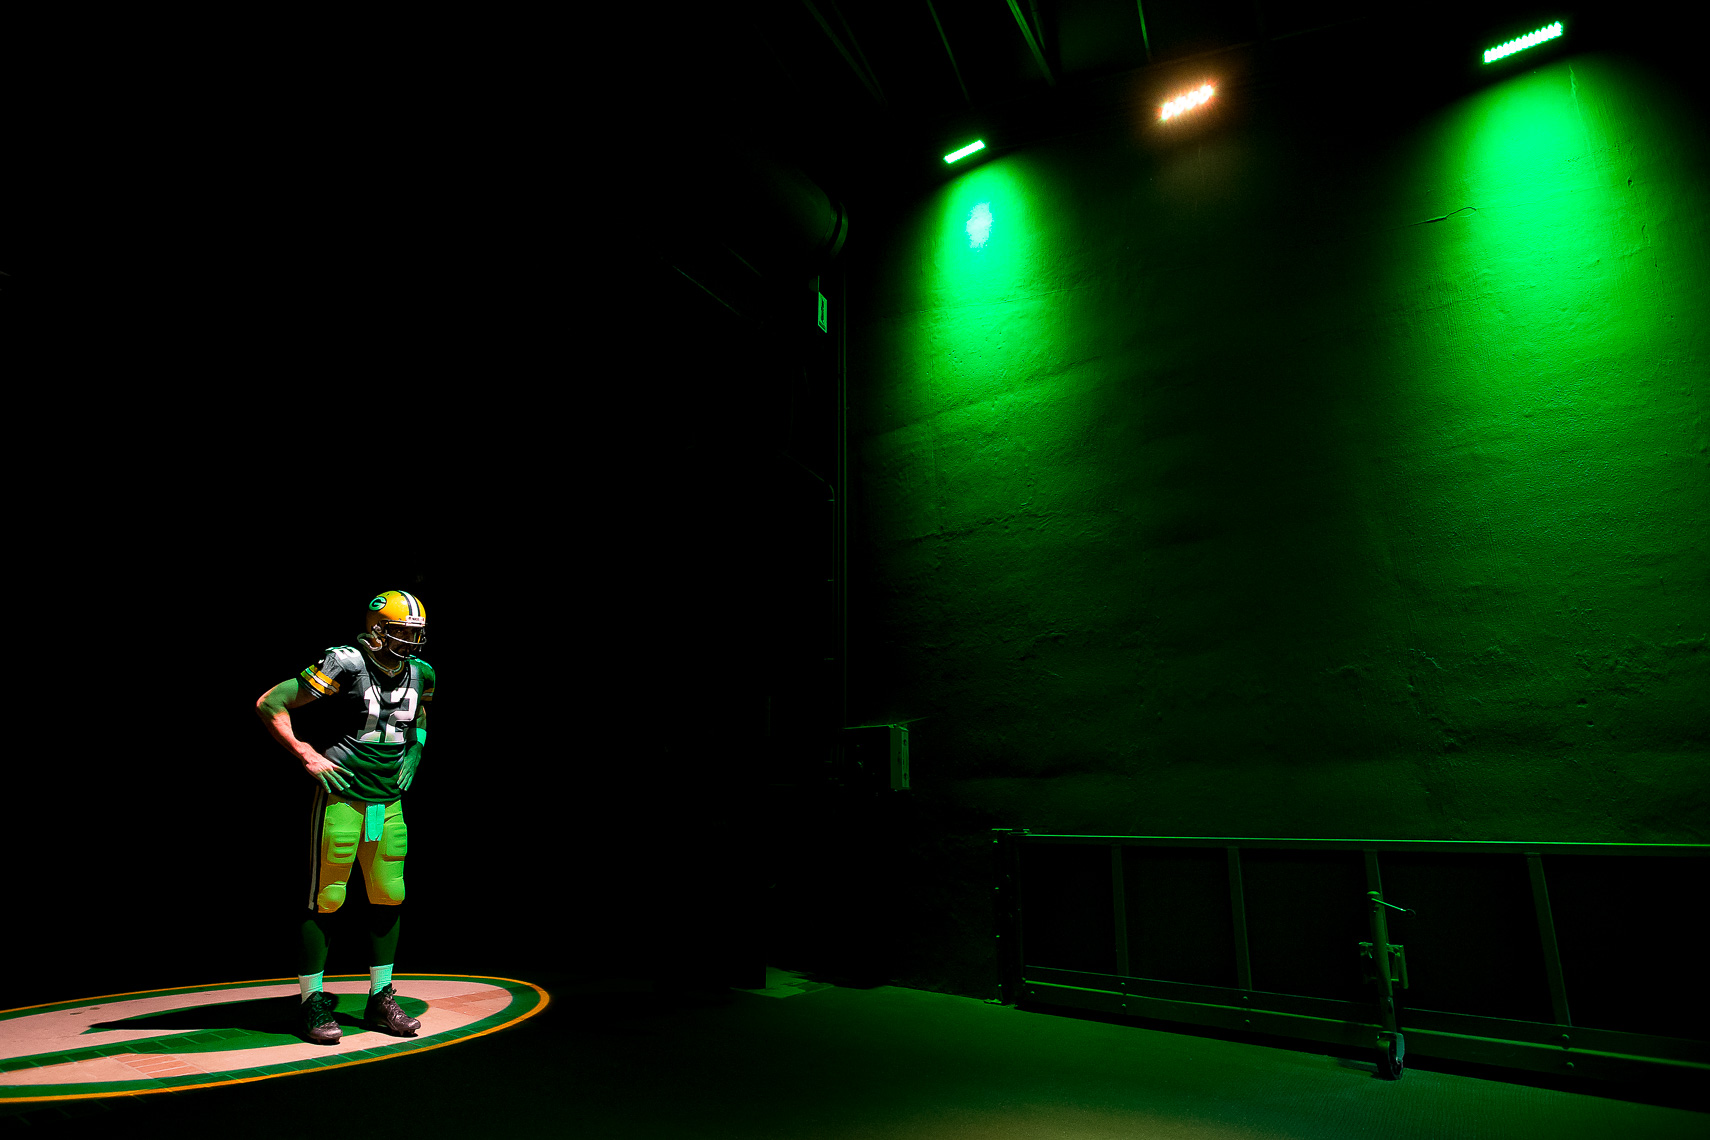 Best photos of the Green Bay Packers NFL football team wearing Nike football uniforms photographed by  commercial sports advertising photographer in maryland